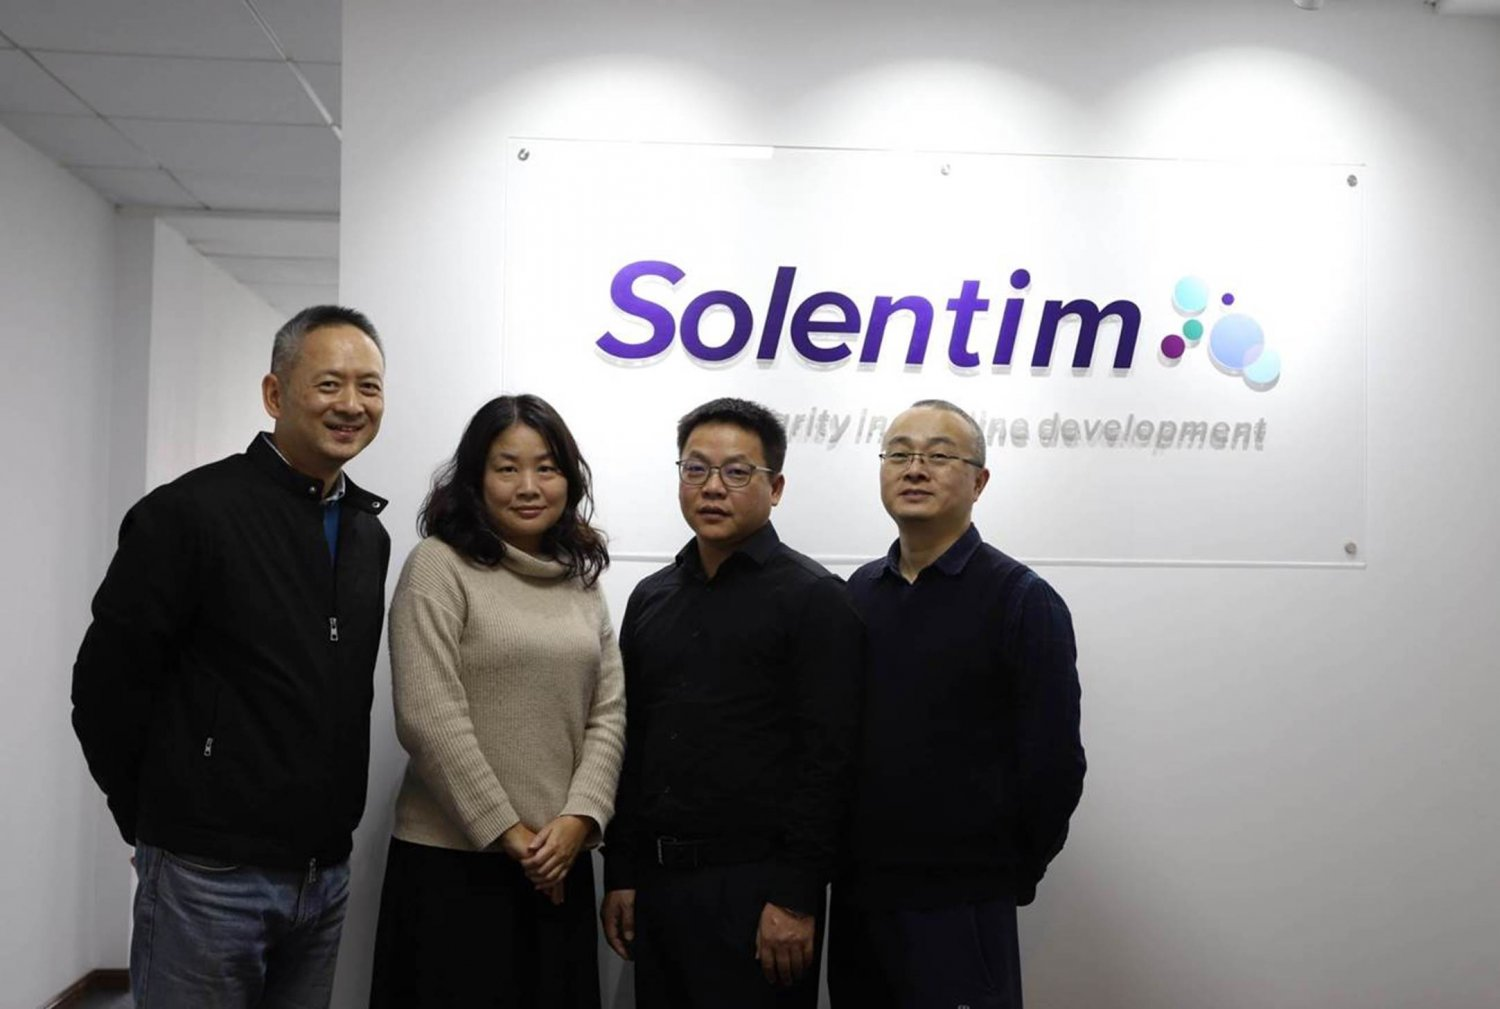 Solentim China team